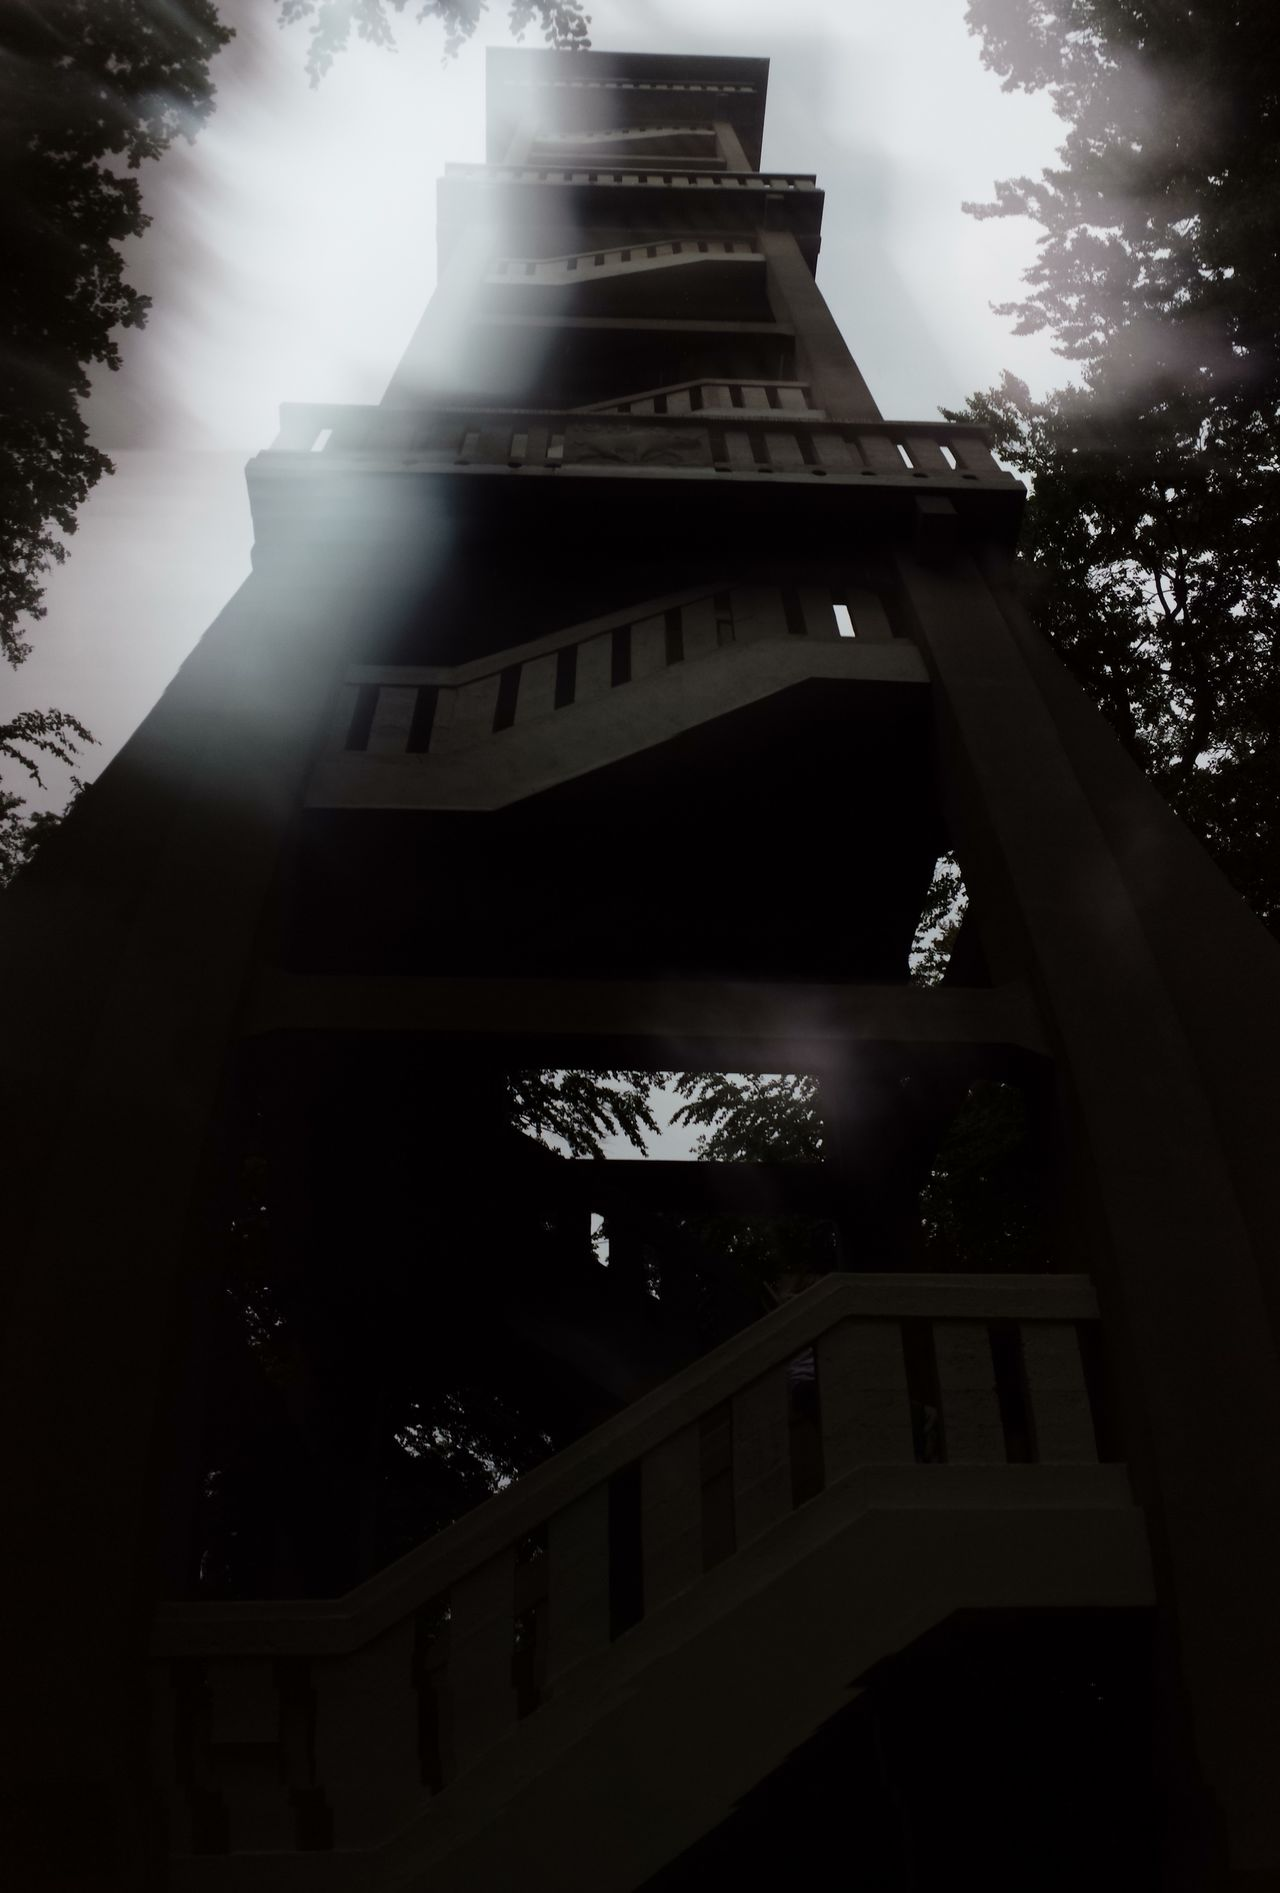 Observation Tower Aussiehtsturm I LOVE PHOTOGRAPHY Nature Photography